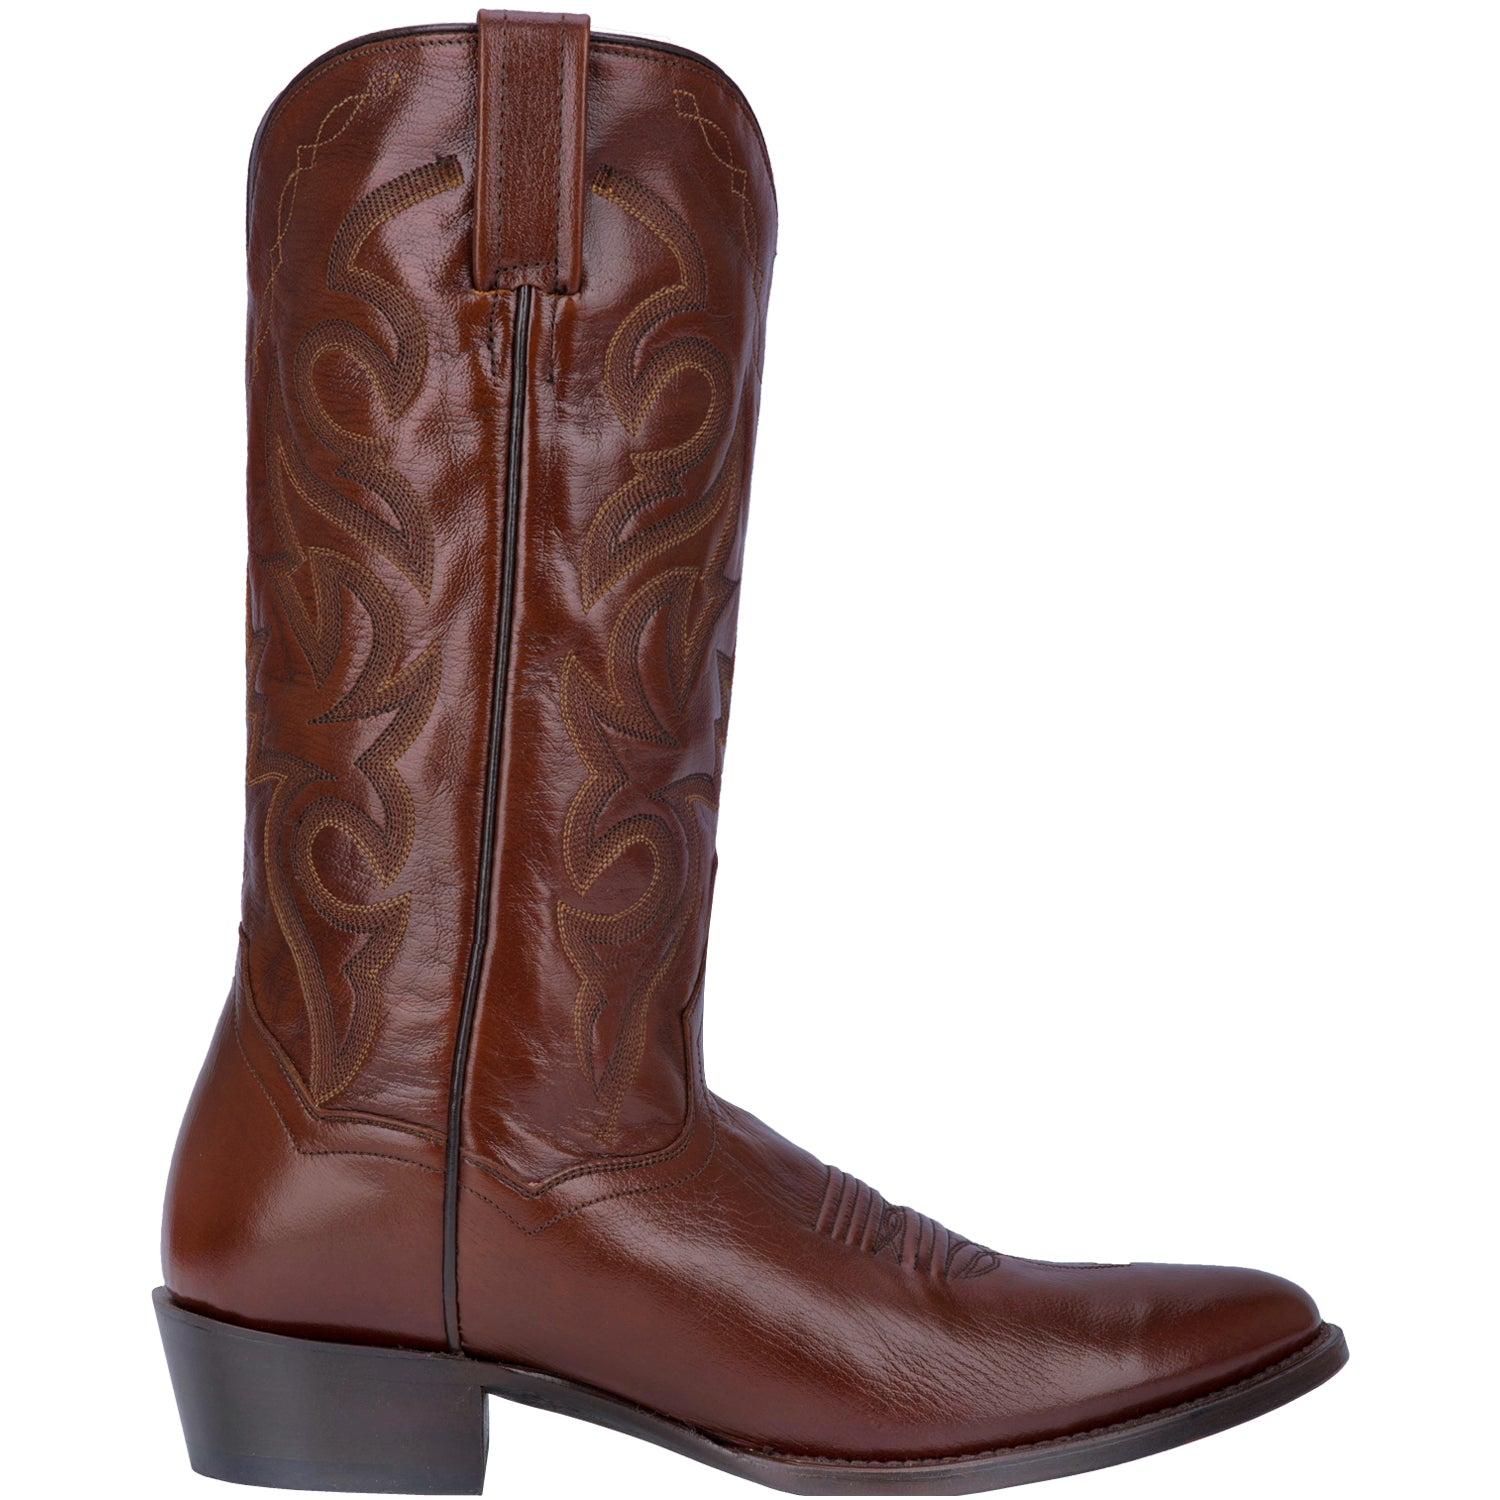 MILWAUKEE LEATHER BOOT 4197052547114